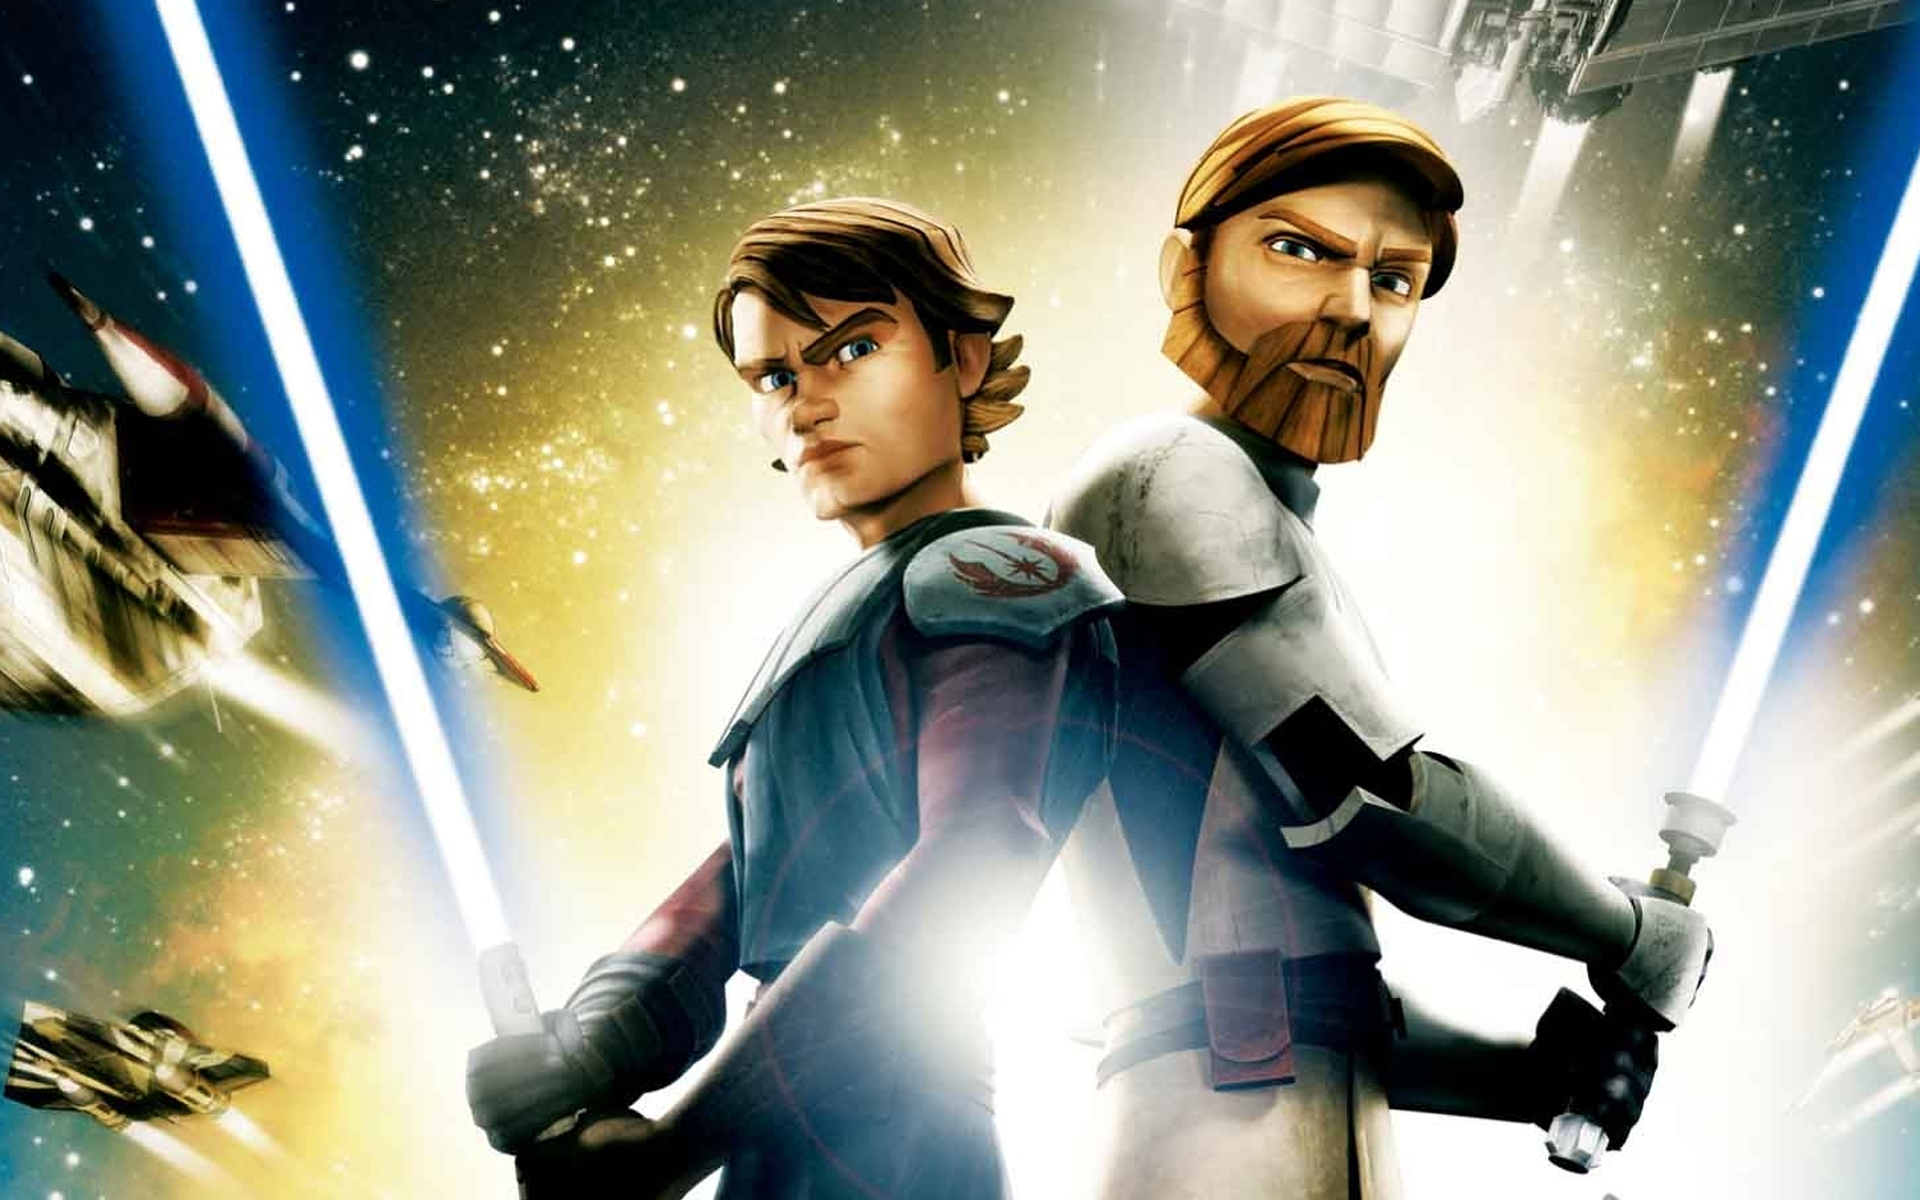 Clone wars anakin skywalker anakin and obi wan